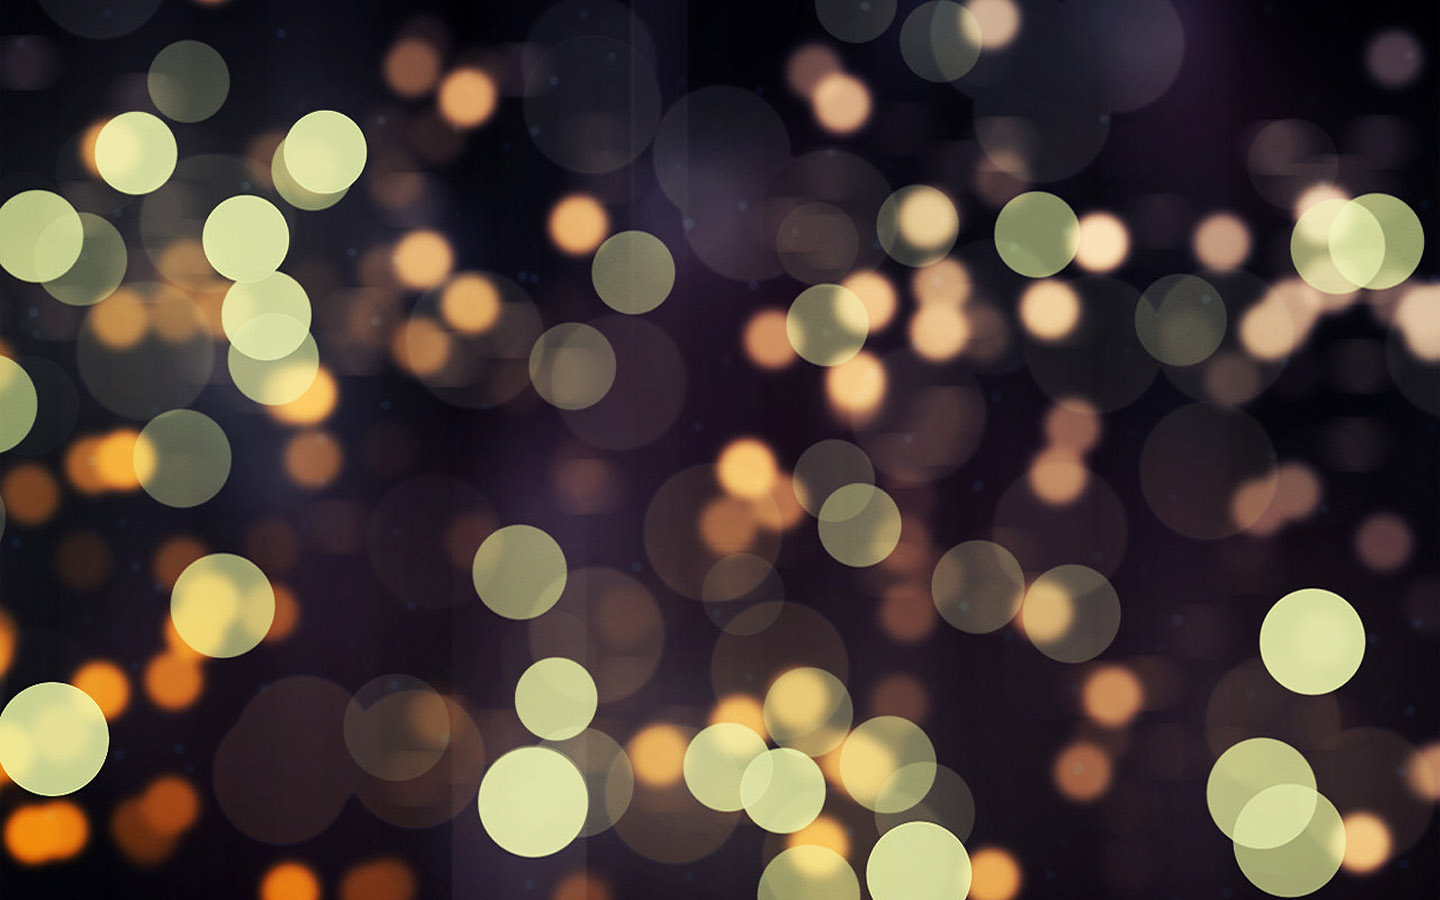 Hd wallpaper bokeh - Bokeh Wallpaper 23984